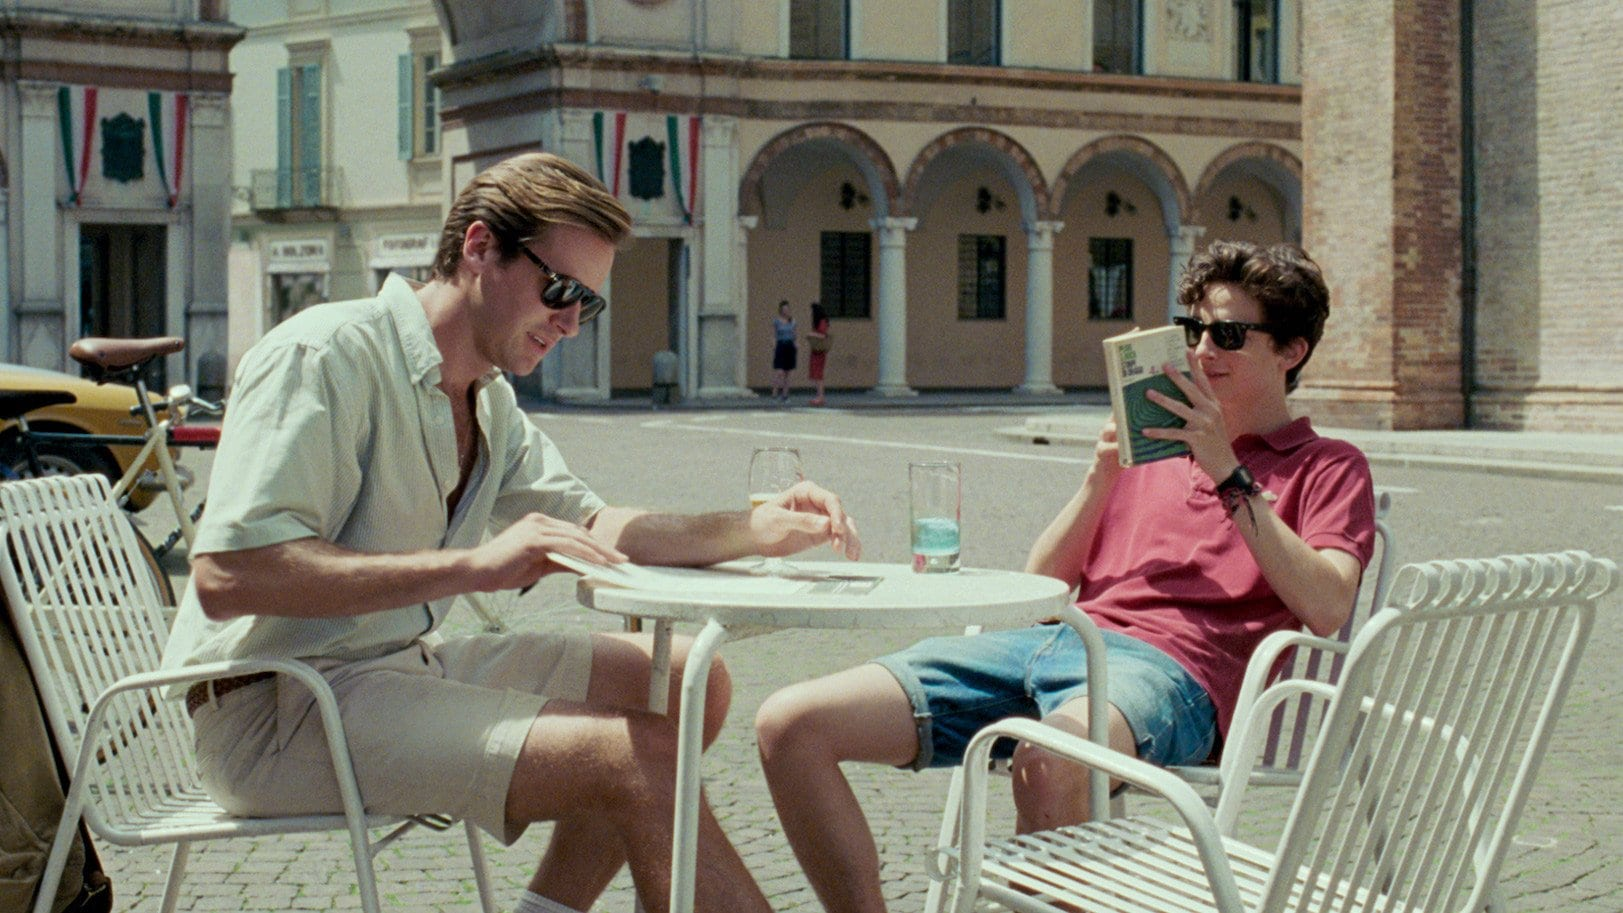 Cafe scene, Call me by your Name